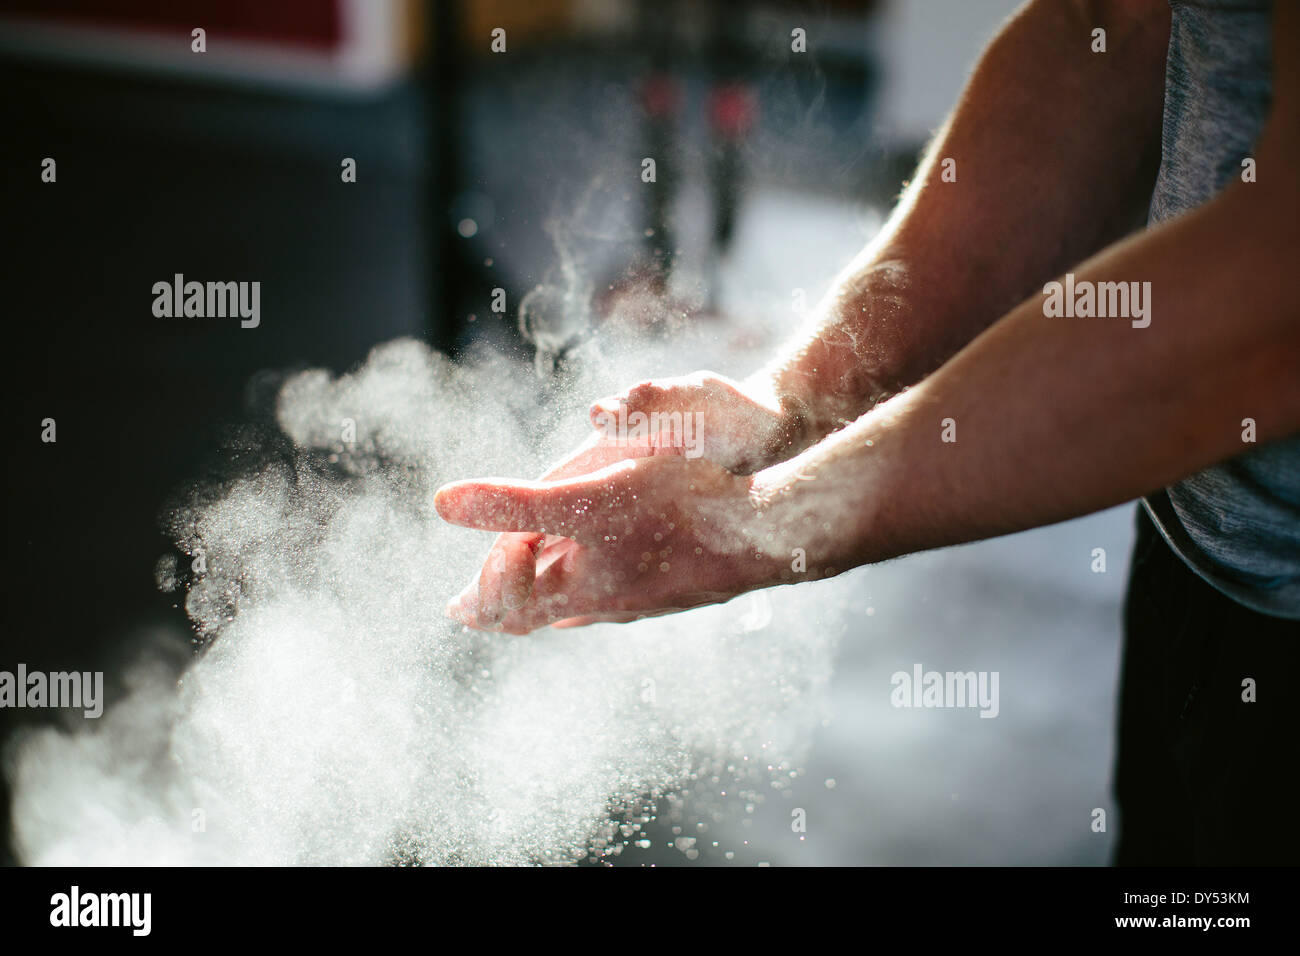 Man putting chalk on his hands - Stock Image